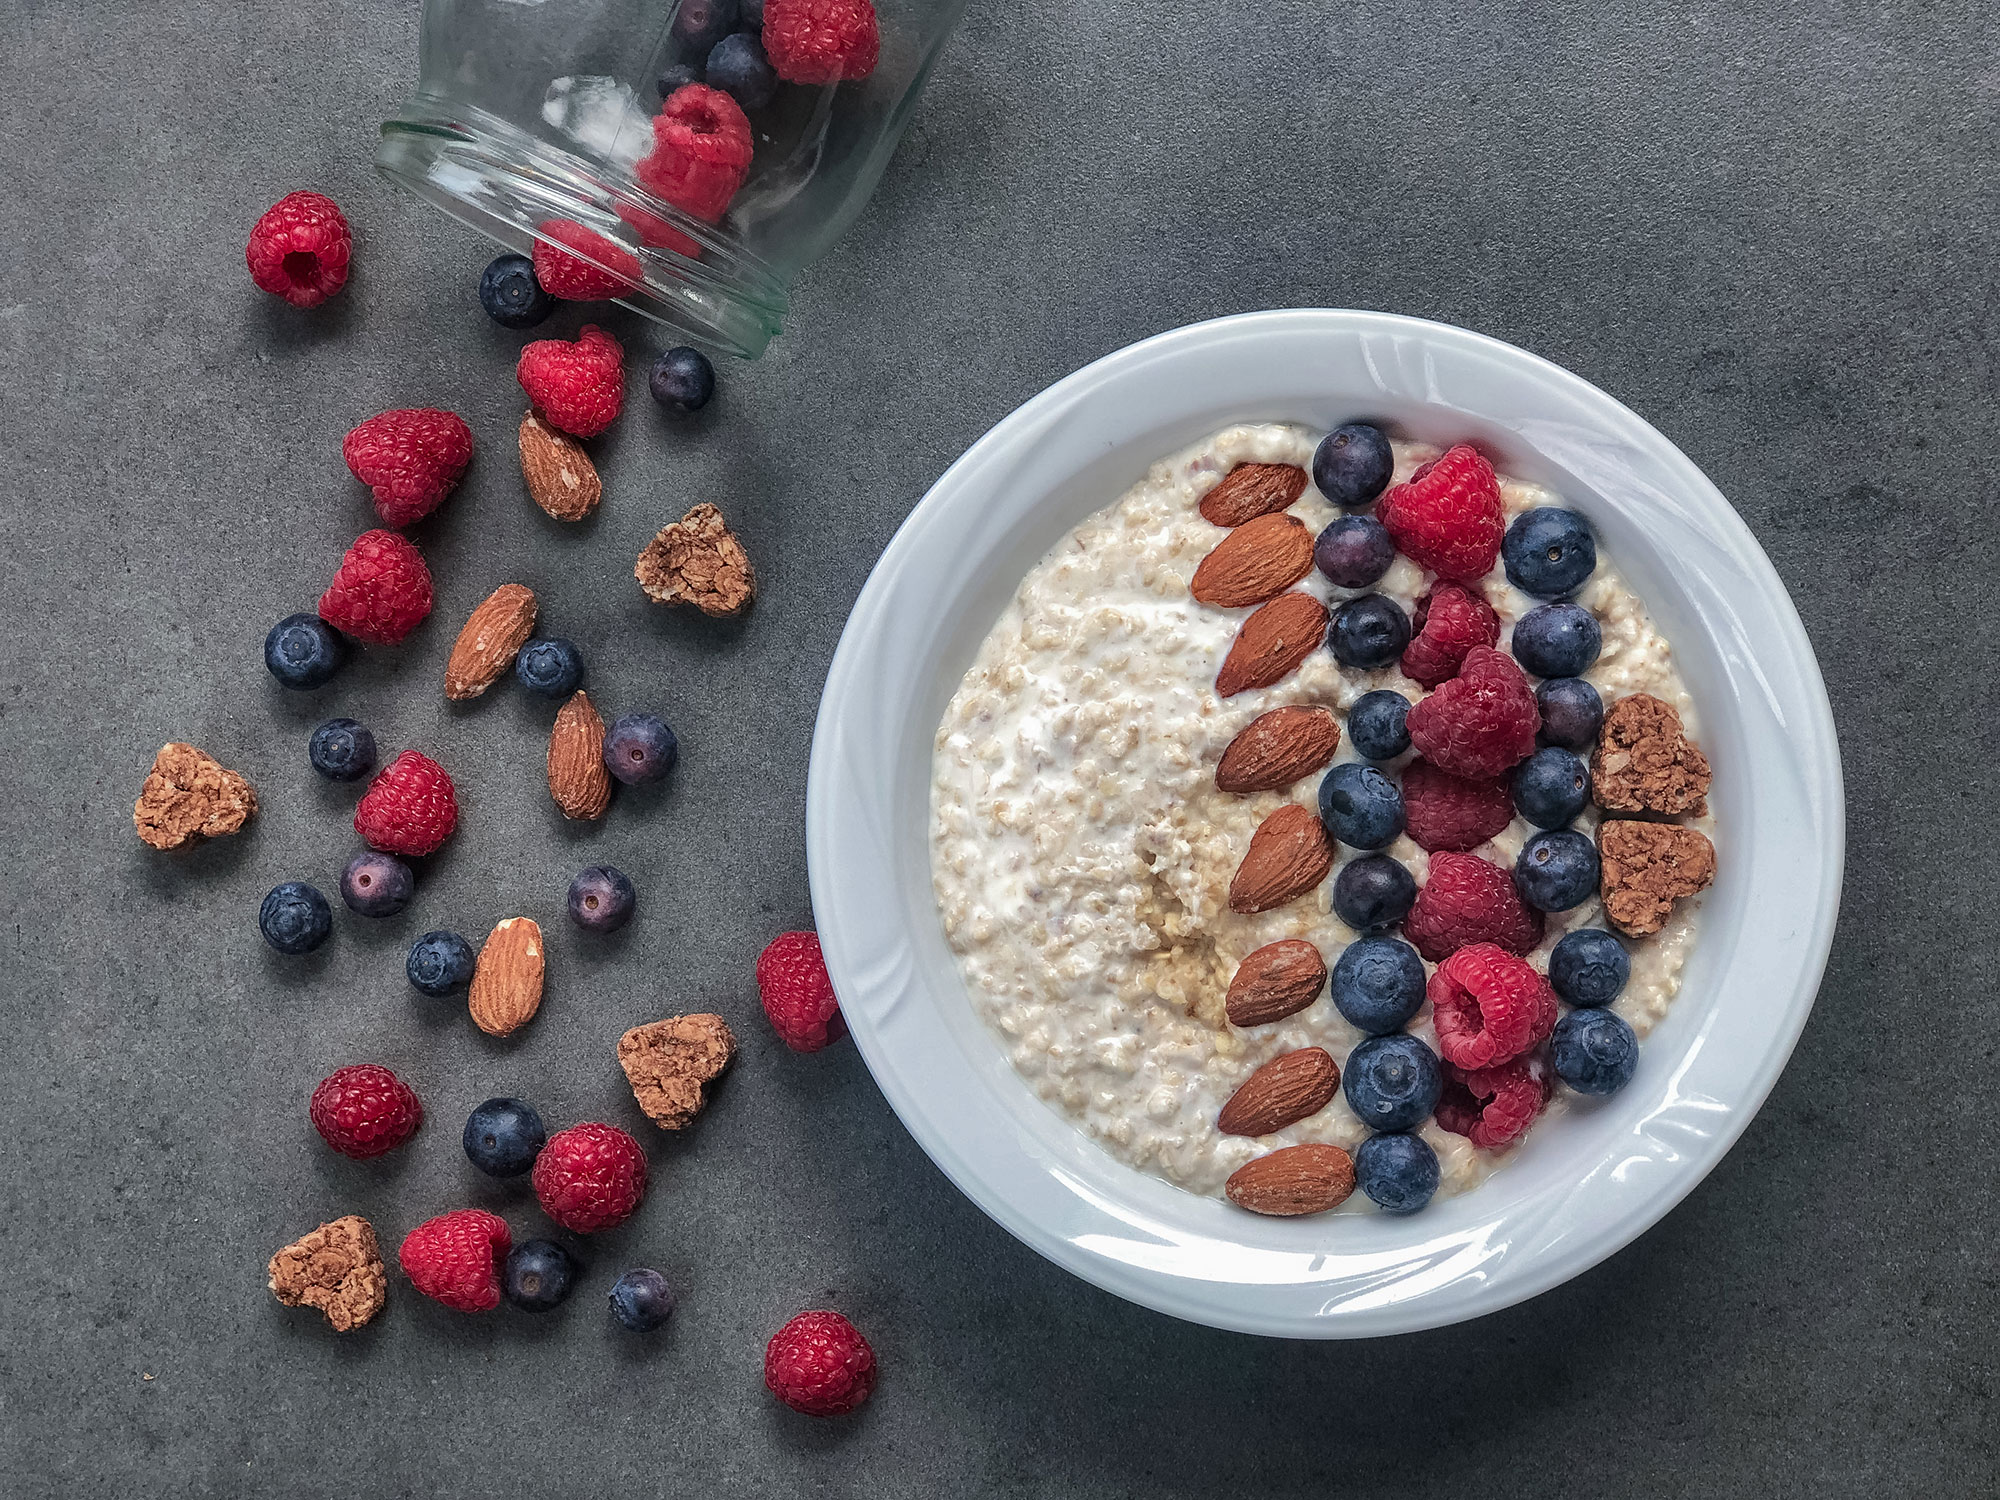 Oatmeal with fruits and almonds